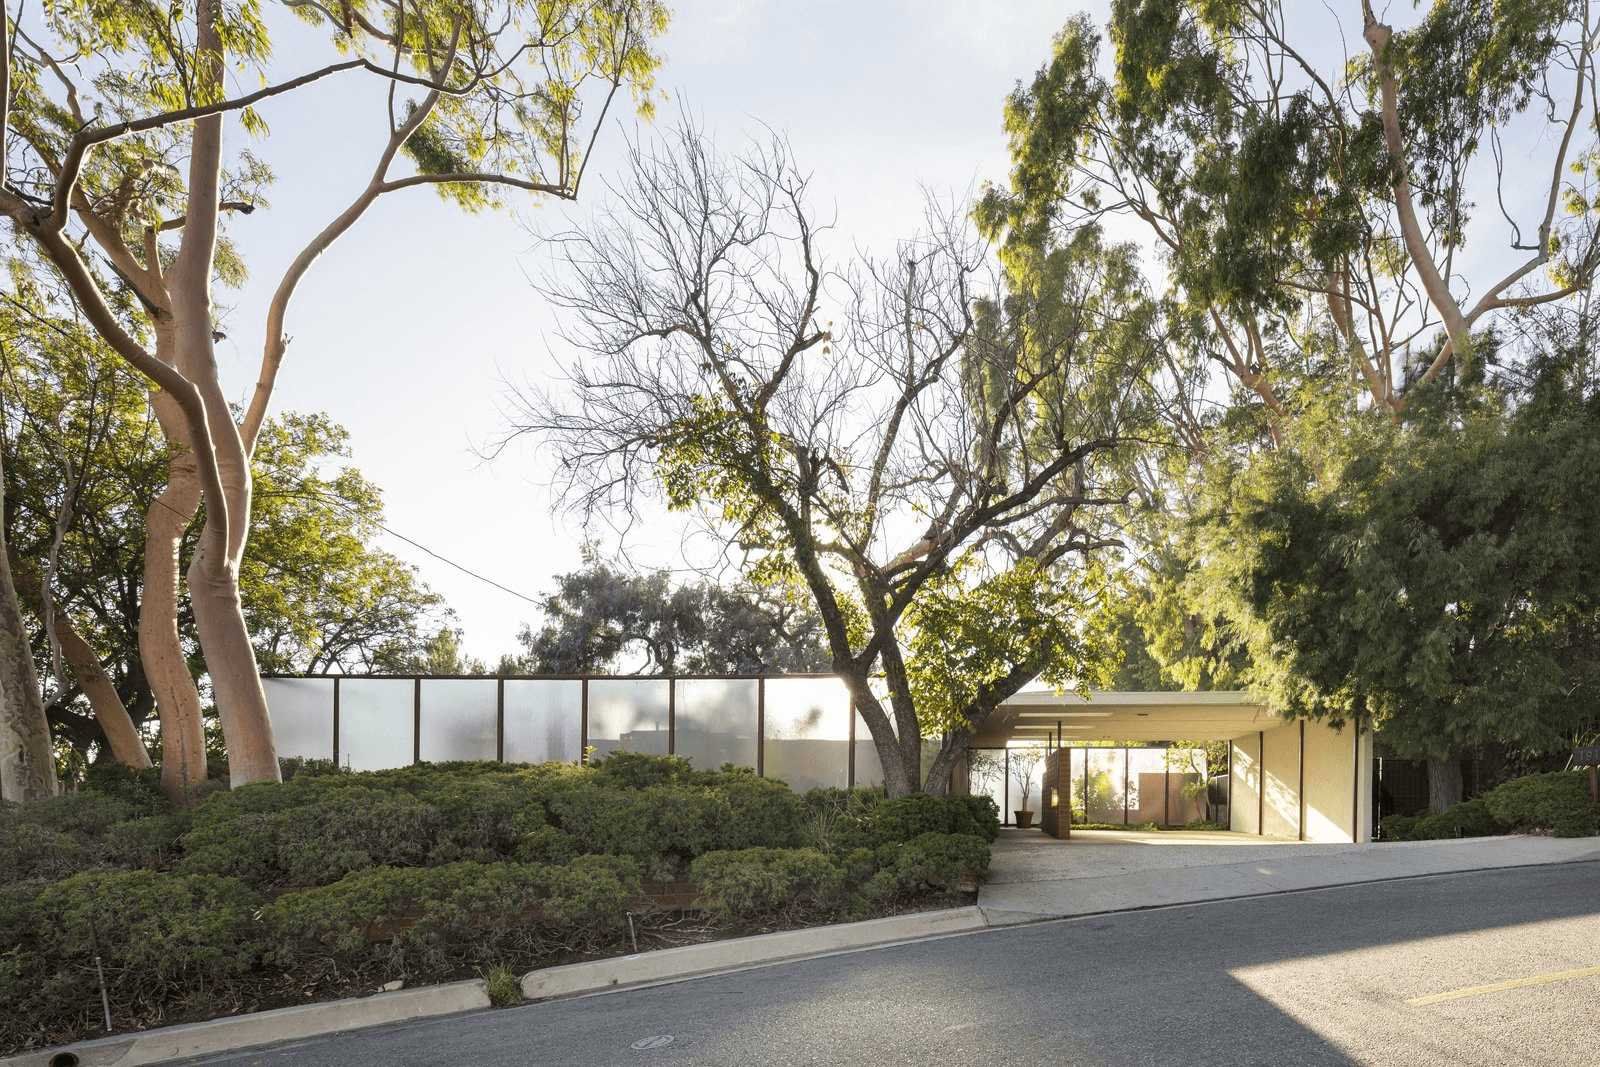 this-is-the-Case-Study-16-house-tucked-away-in-Bel-Air-area-of-LA-a-view-of-outside-the-home-surrounded-by-big-trees